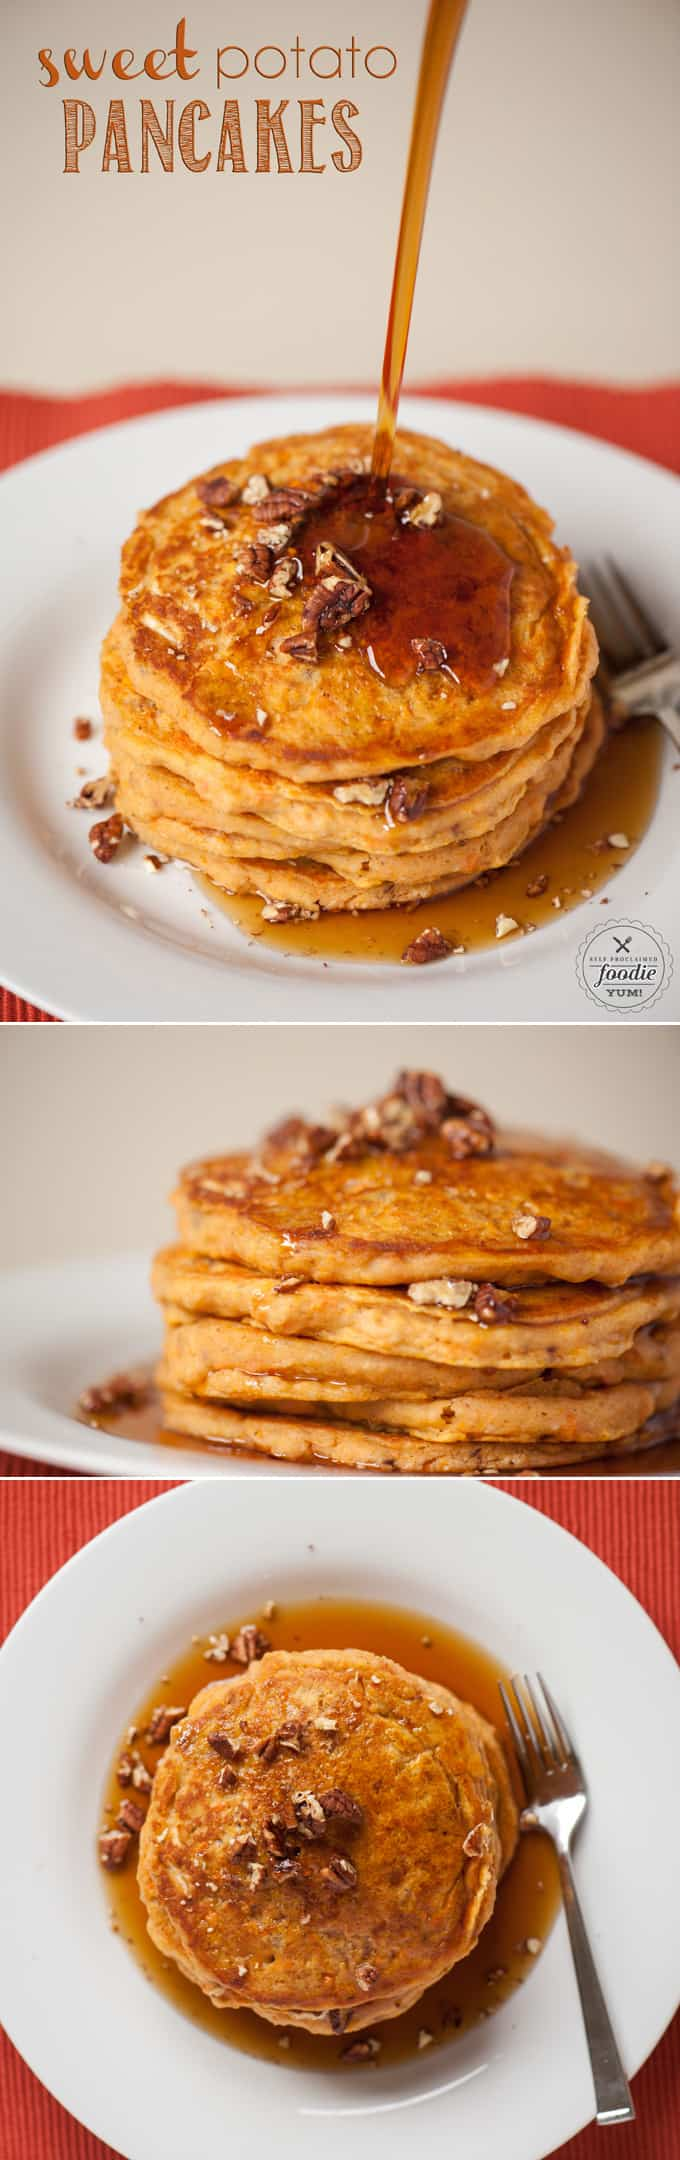 Homemade buttermilk Sweet Potato Pancakes are easy to make and make a perfect breakfast on a crisp fall morning when served with warm pure maple syrup.